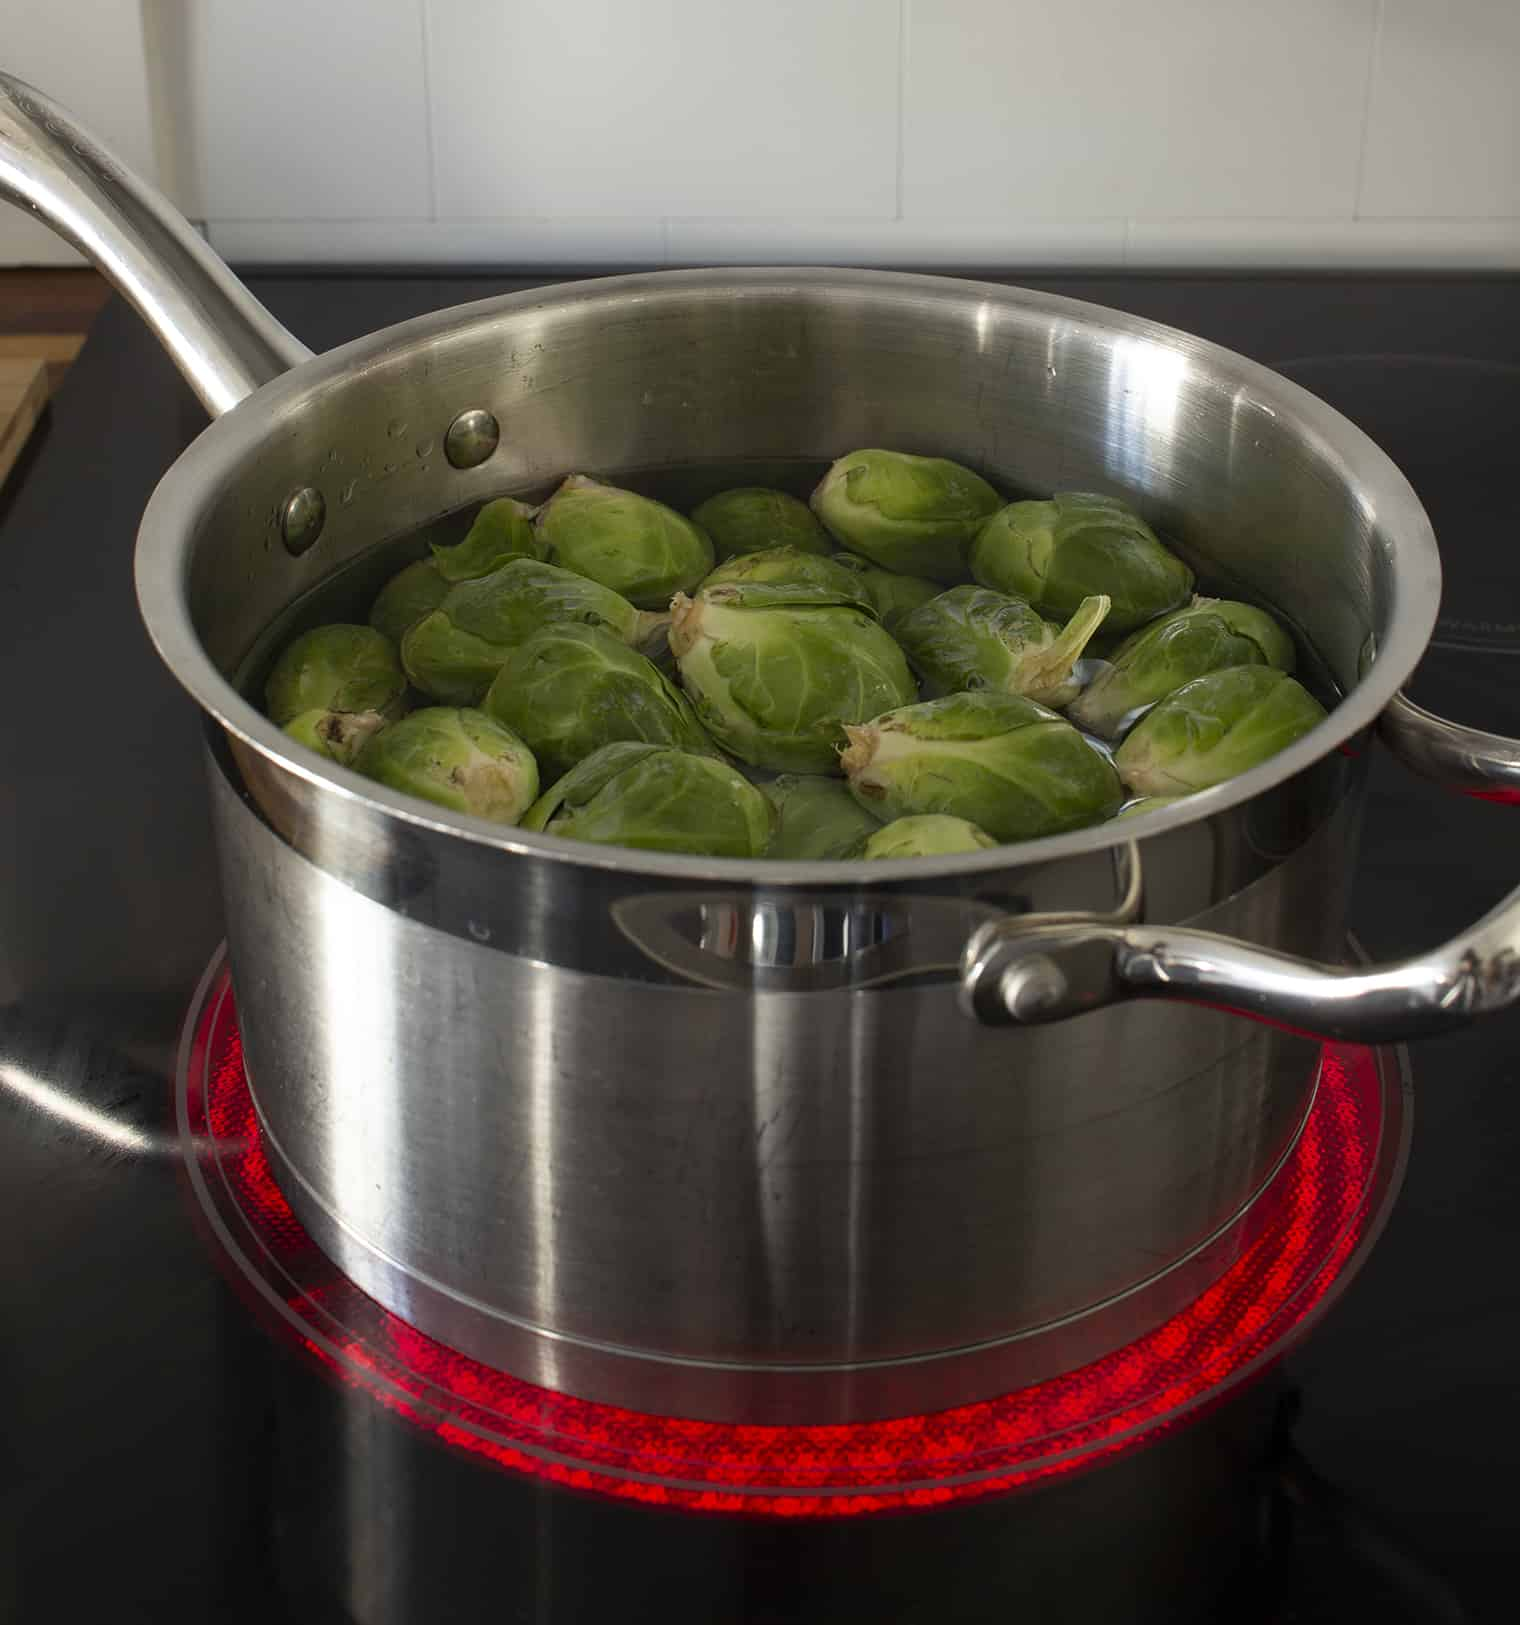 brussel sprouts in pot